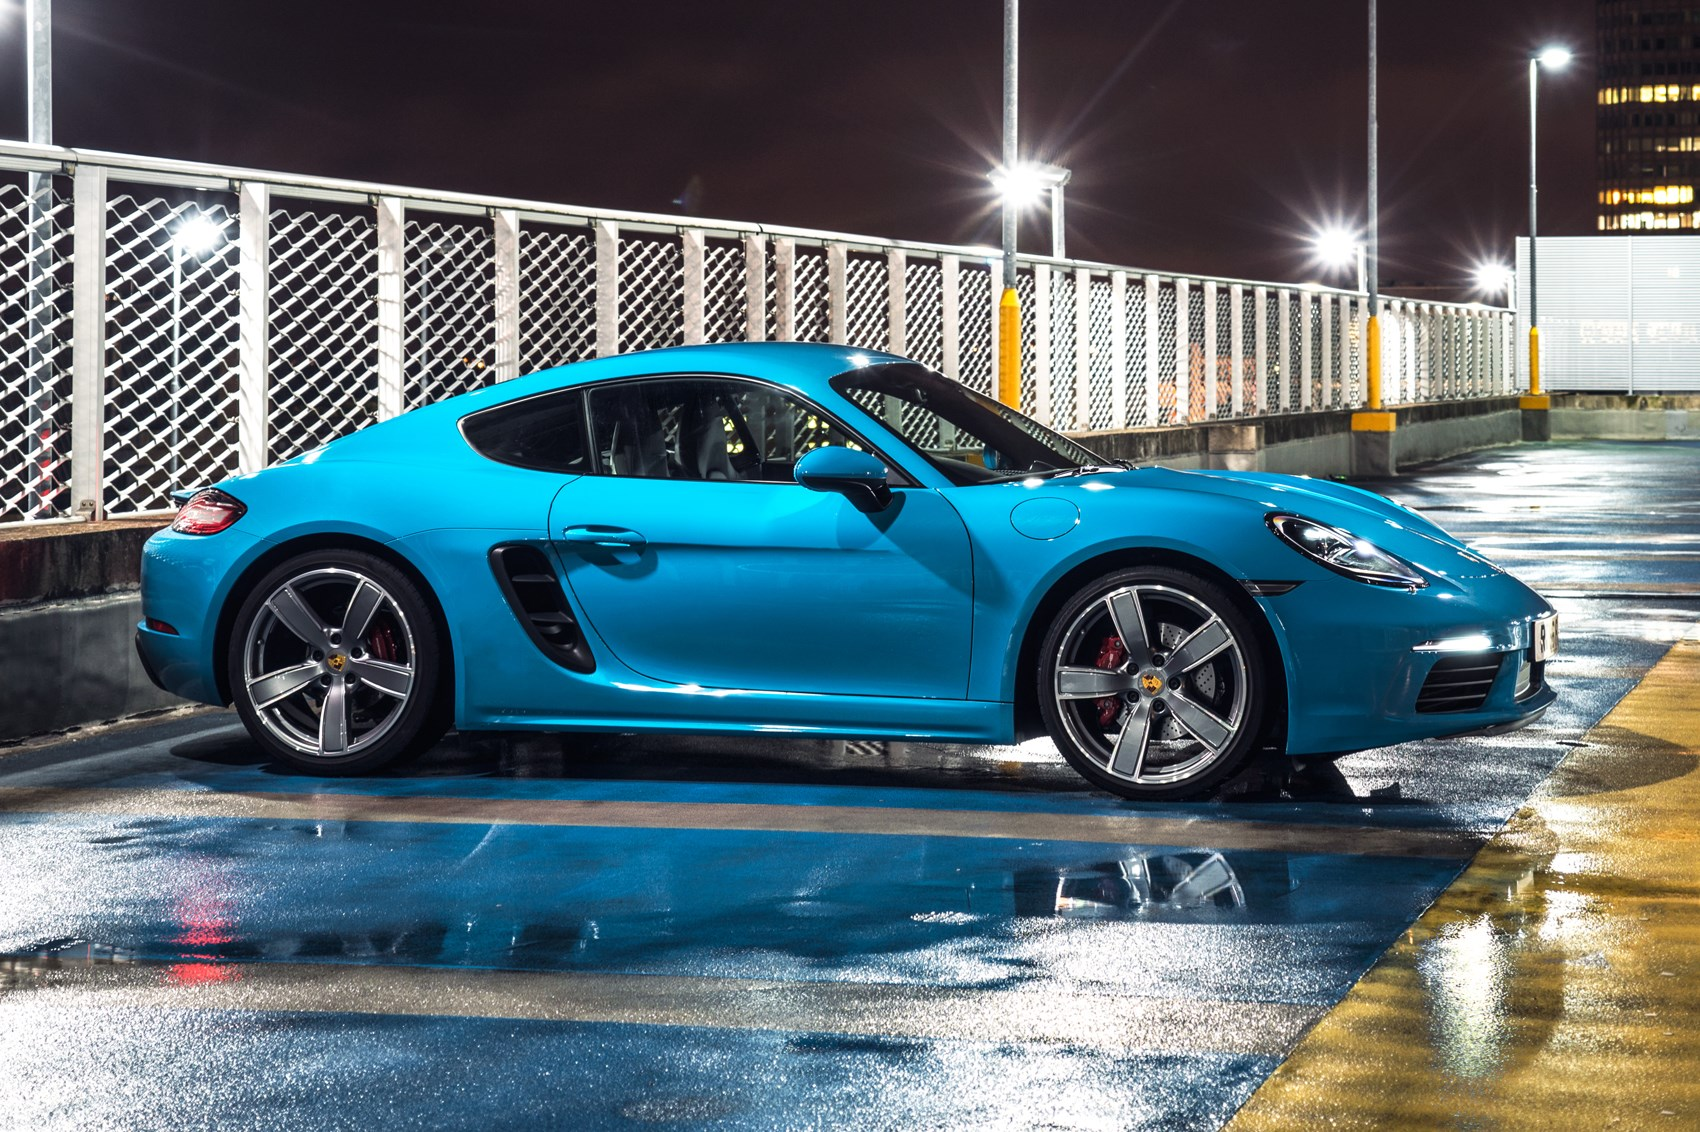 porsche cayman pcp with 718 Cayman on Secure A 40000 Car For 400 Per Month On Pcp furthermore 718 Cayman in addition Top Sports Cars Porsche 718 Cayman Bmw M2 And Jaguar F Type Tested A7691821 moreover 1046 Porsche Cayman 981 S 3 4 Pdk Coupe together with 896 Porsche Cayman 981 2 7 PDK Coupe.